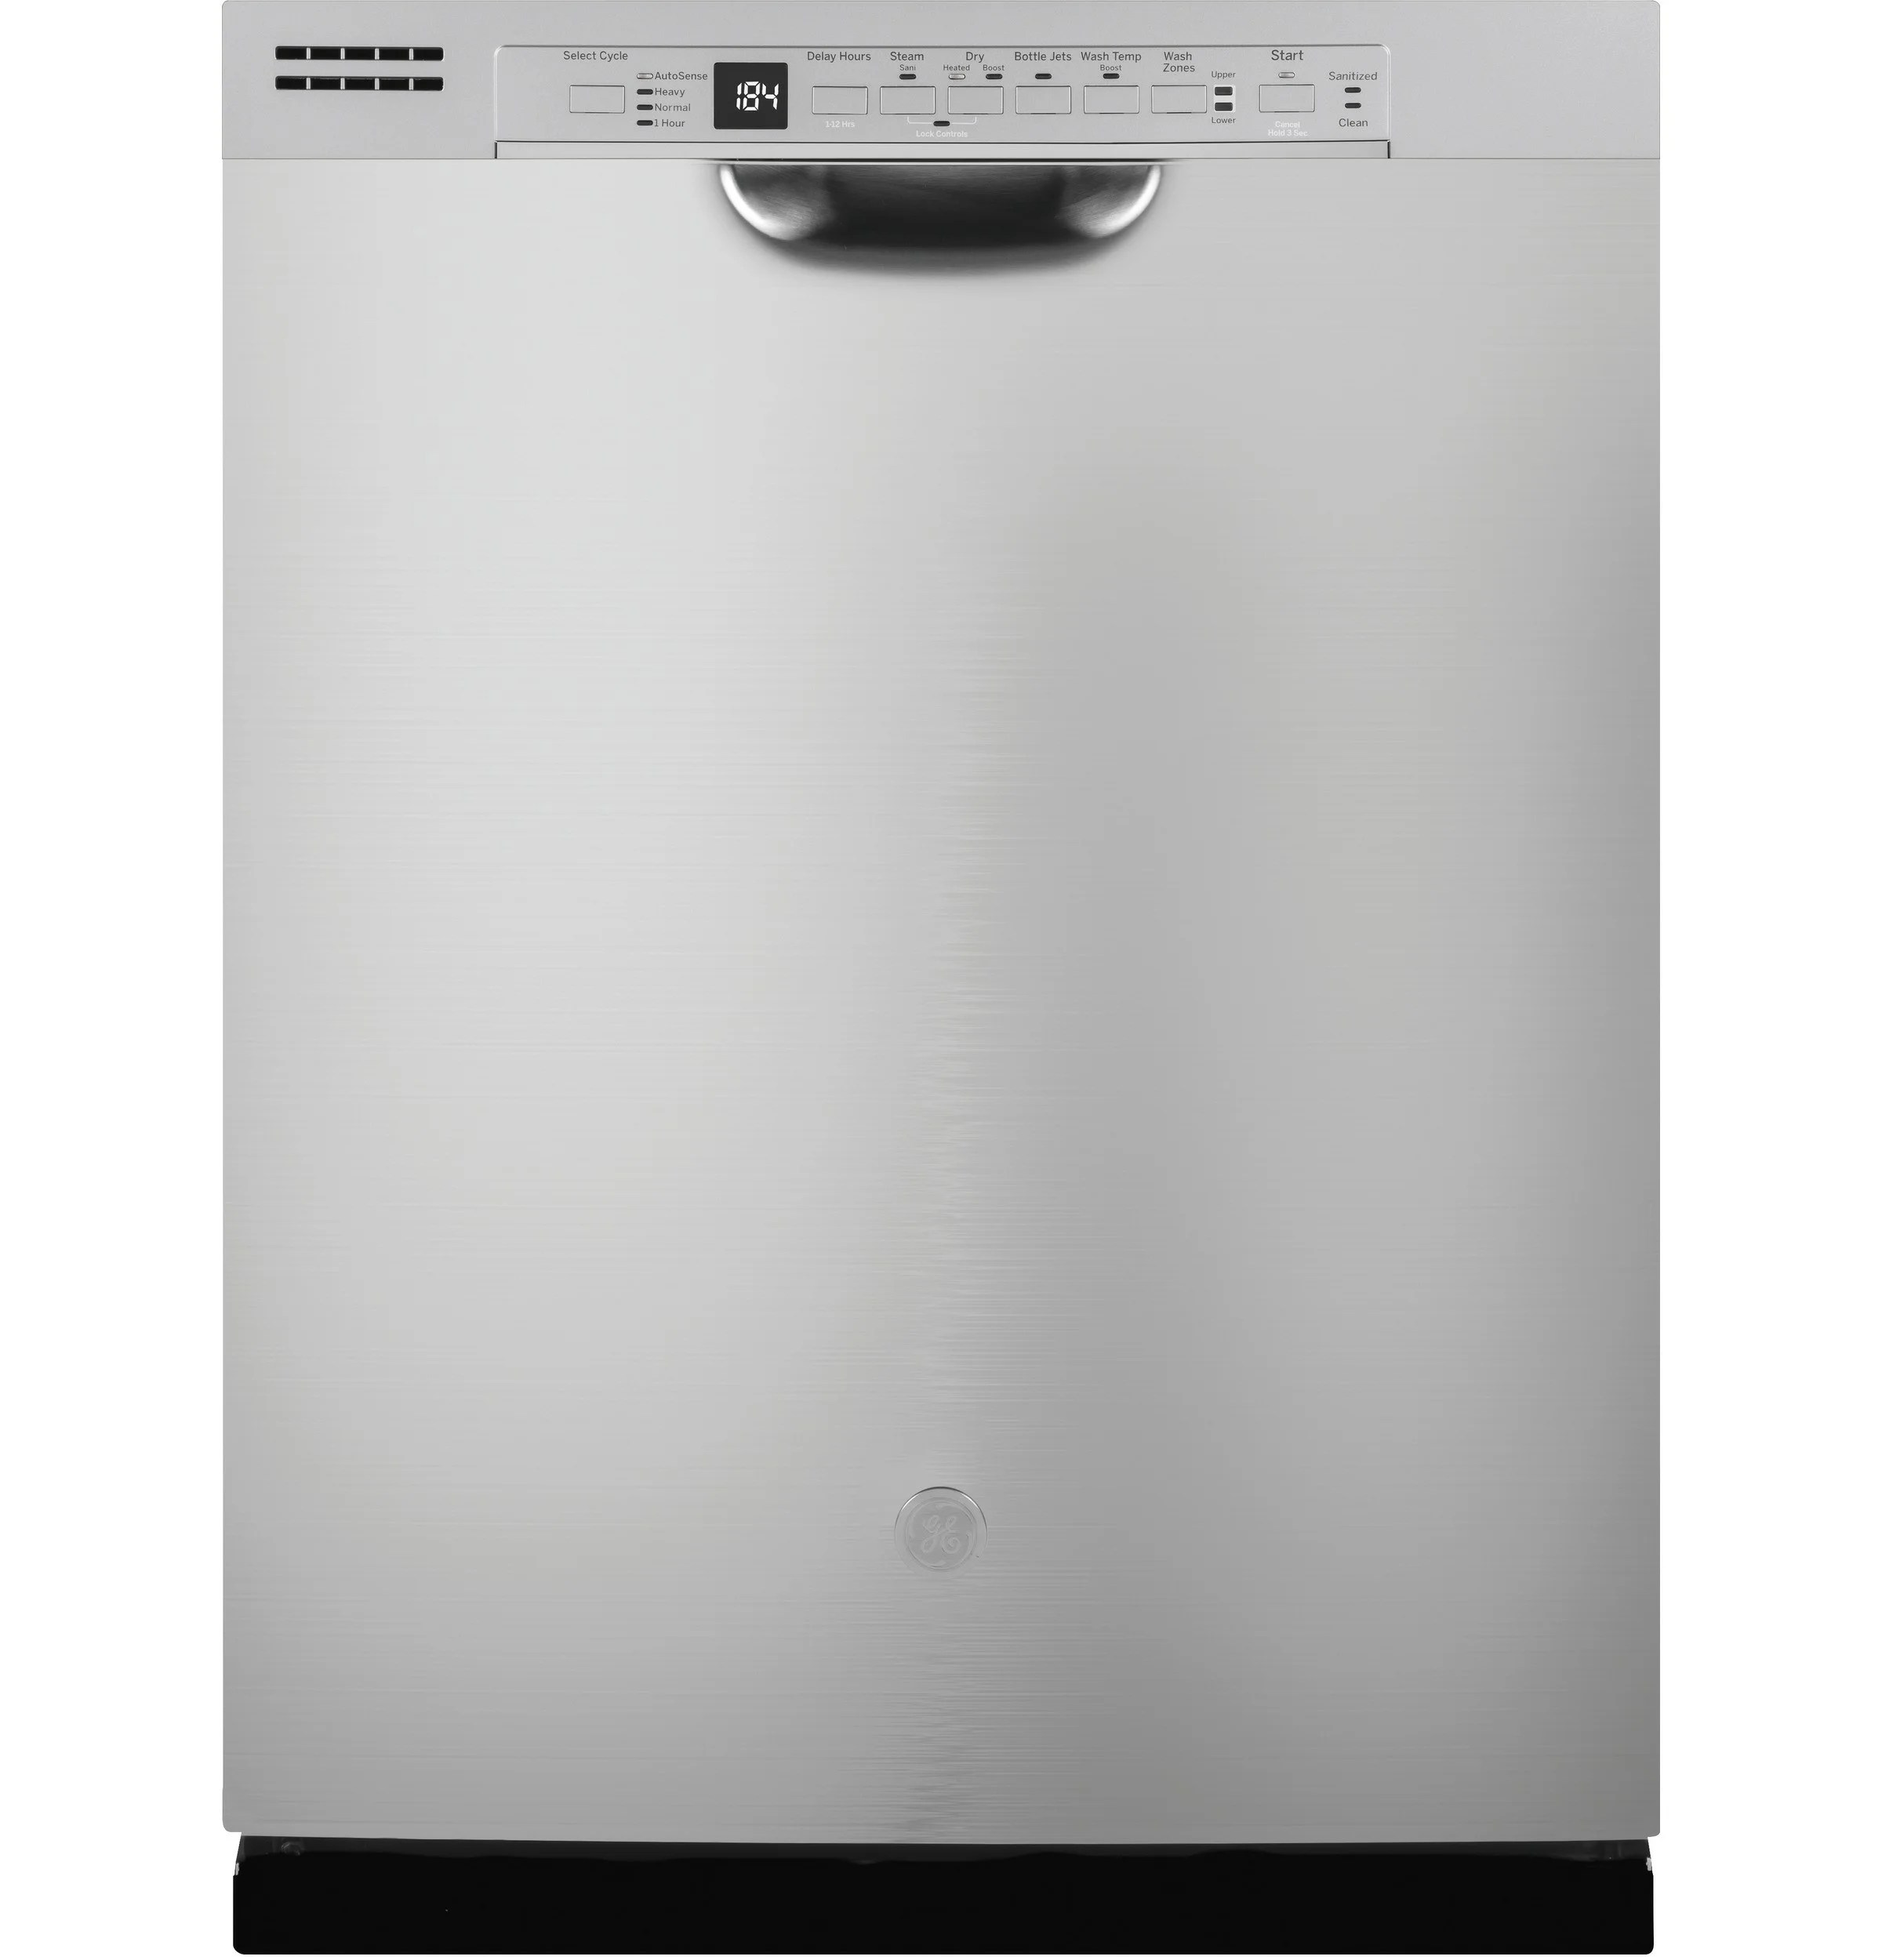 Dishwashers From 399 Through 02 08 Wayfair